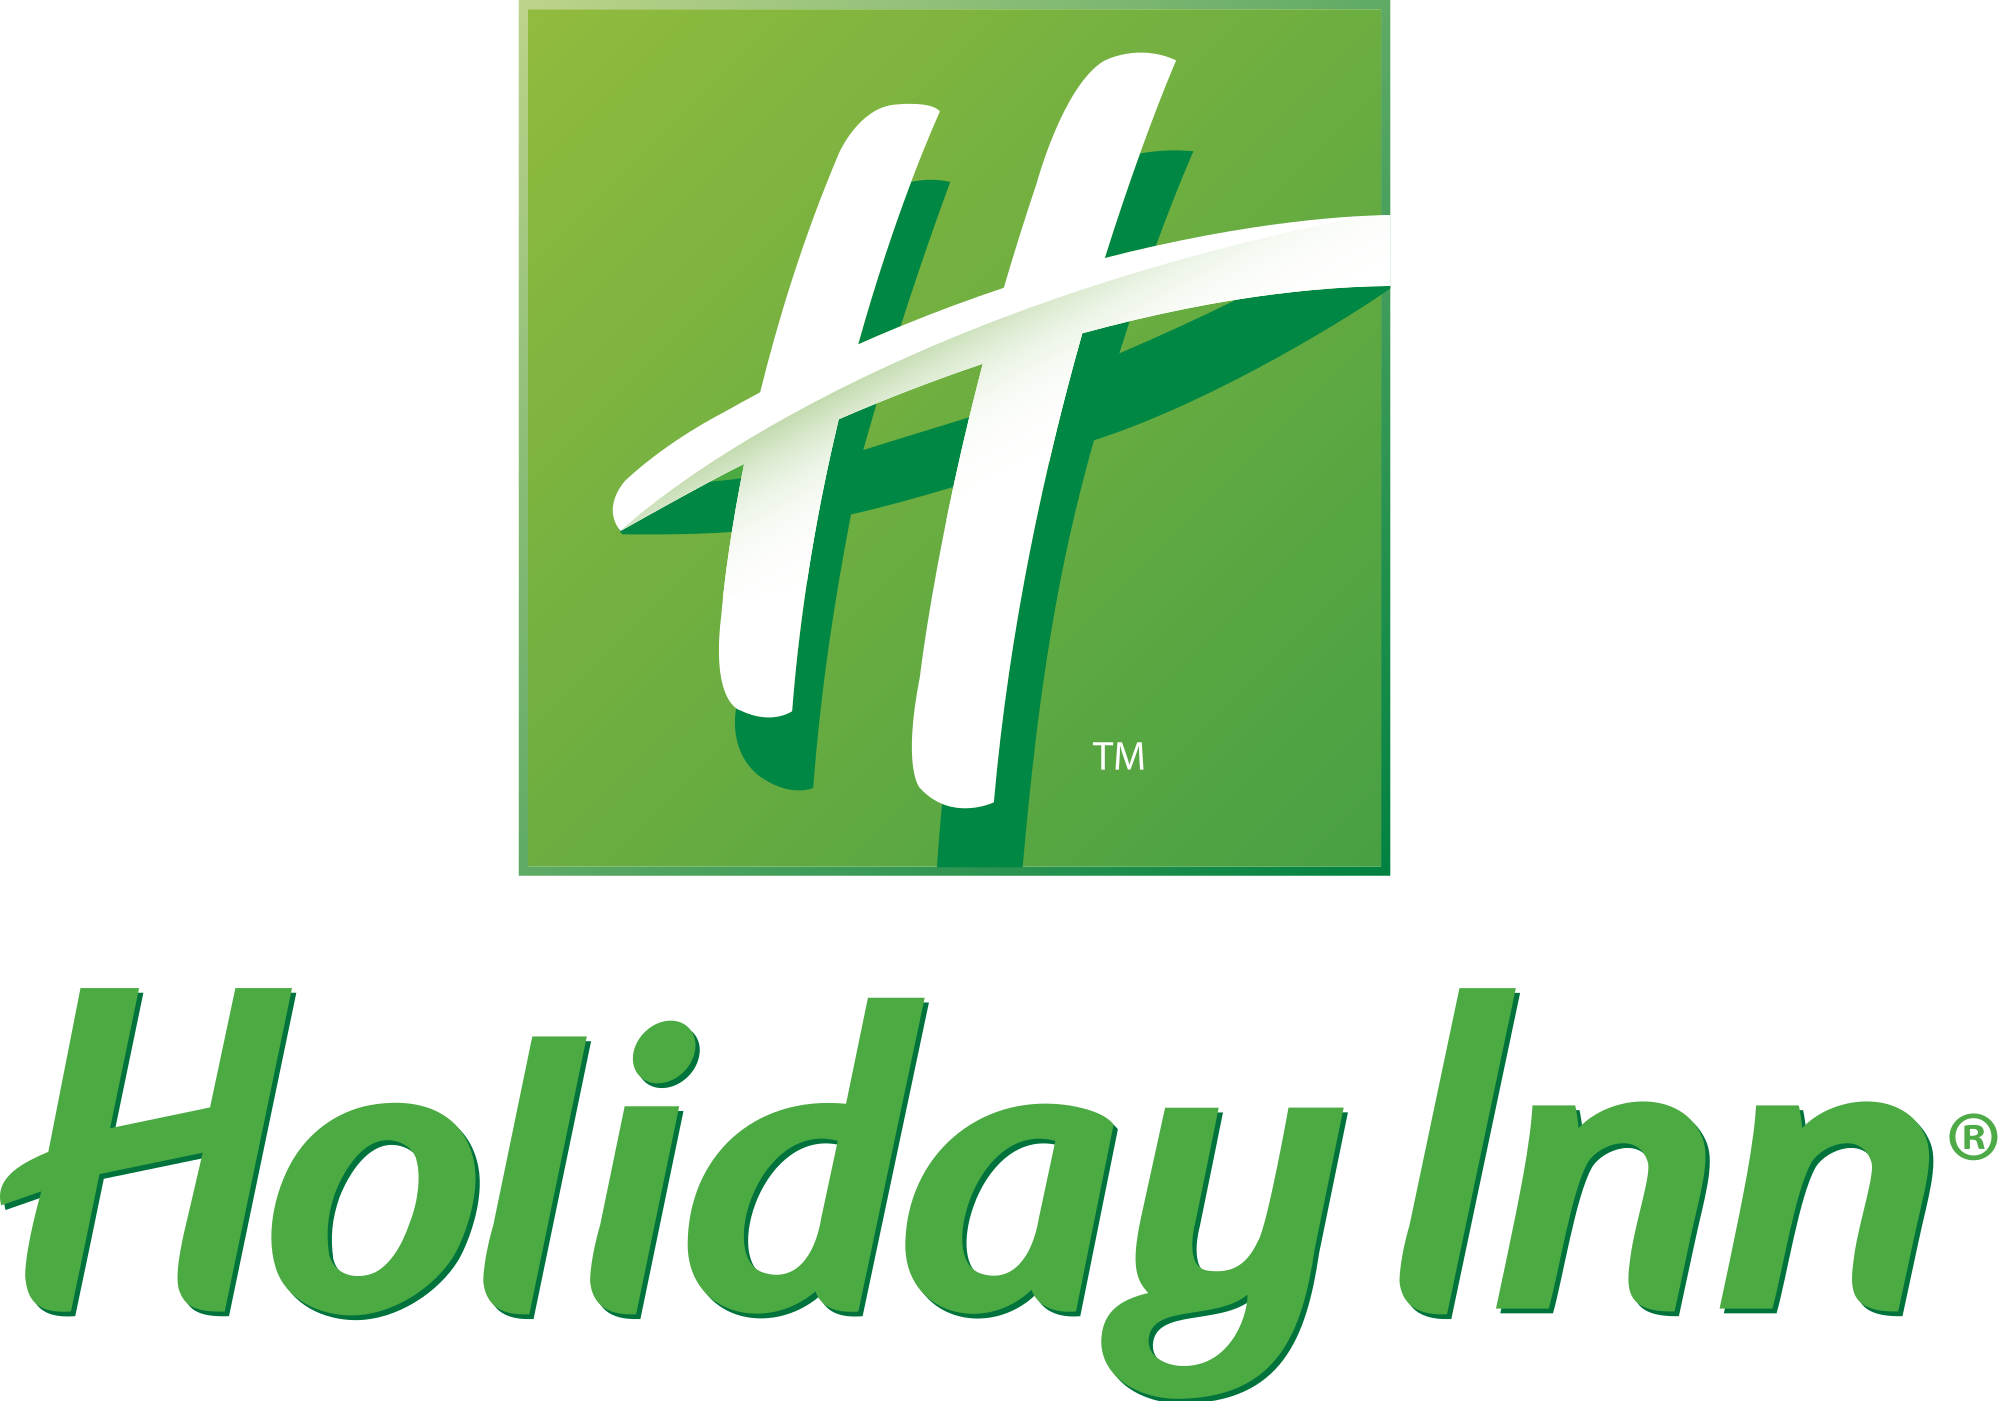 Holiday Inn has chosen Tiles Ahead